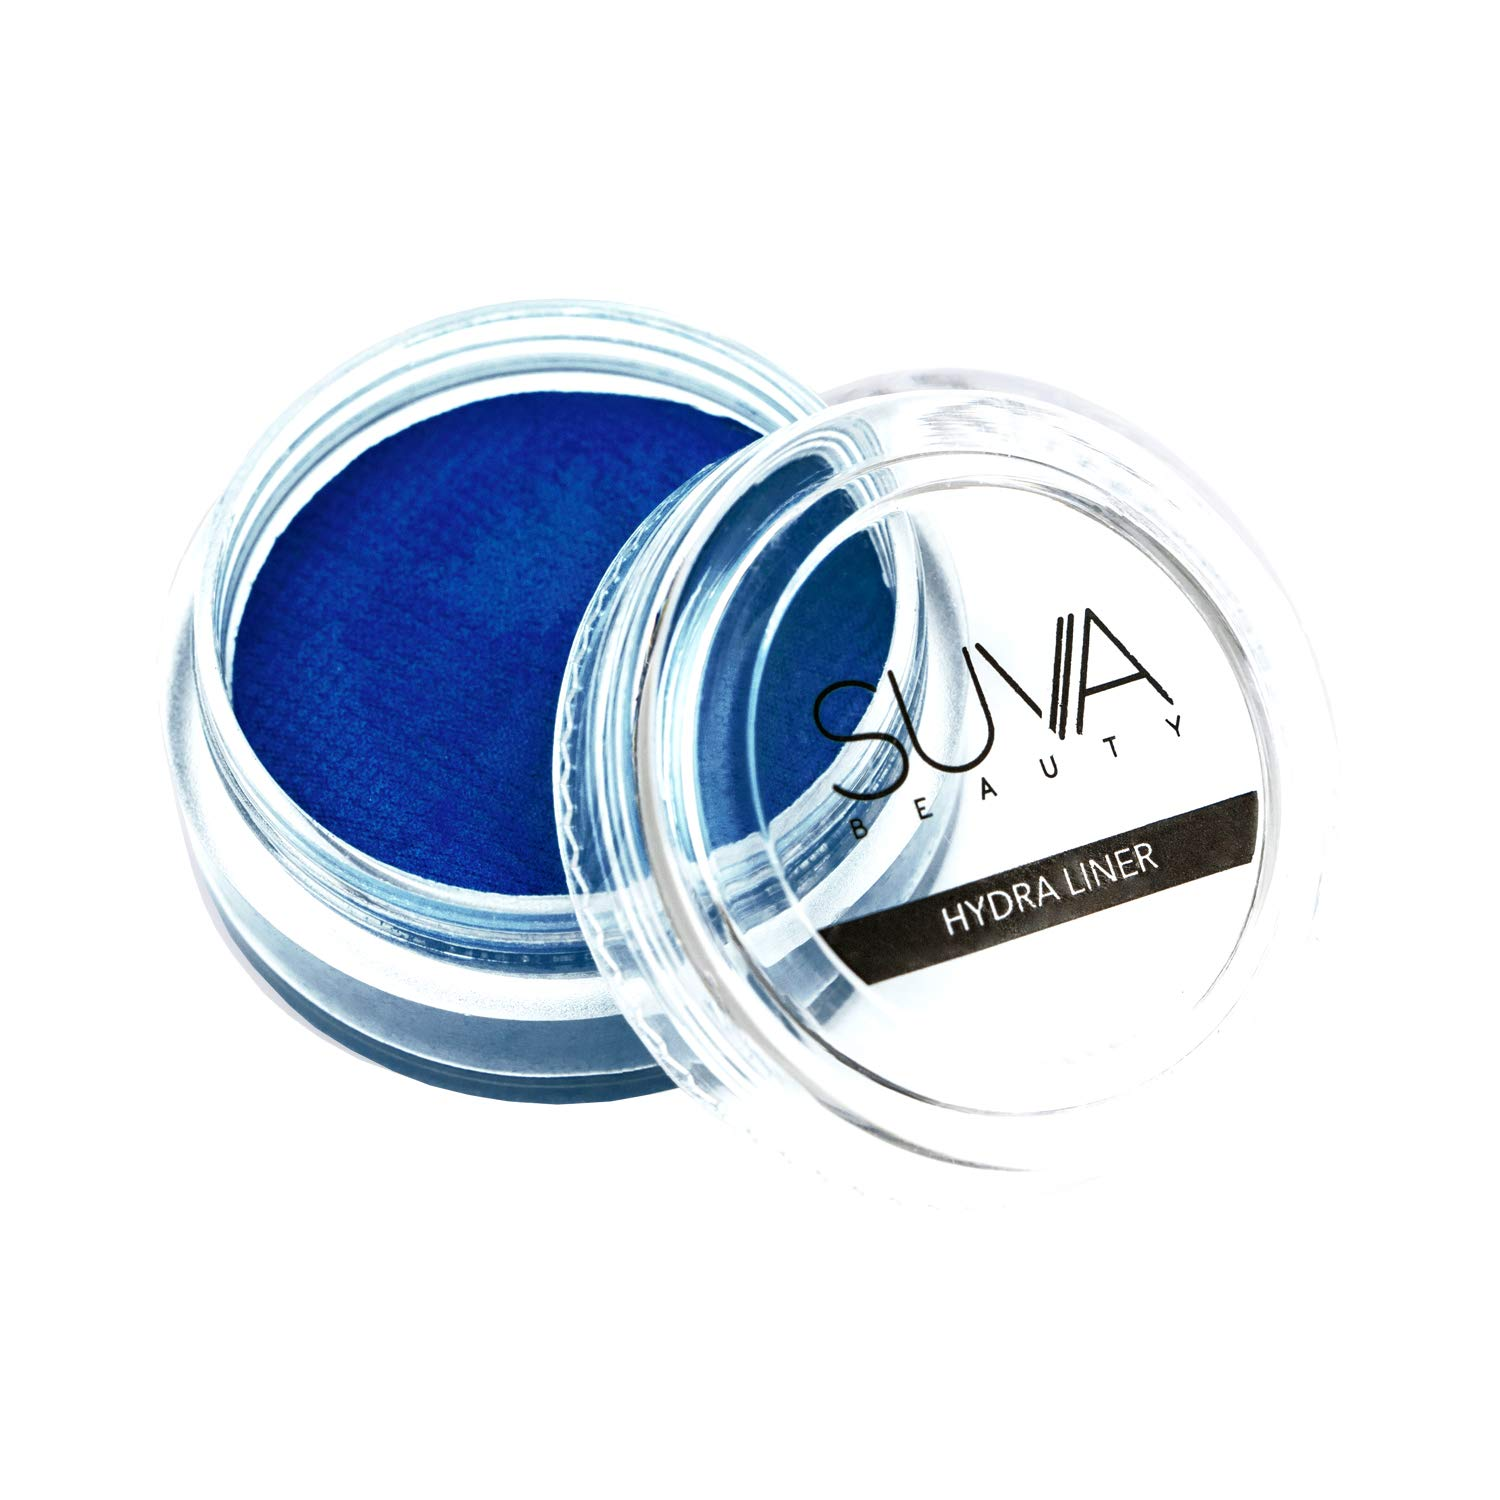 SUVA Beauty - Tracksuit (UV) Hydra FX, Water-Activated Royal Blue Body Paint Makeup, 10g